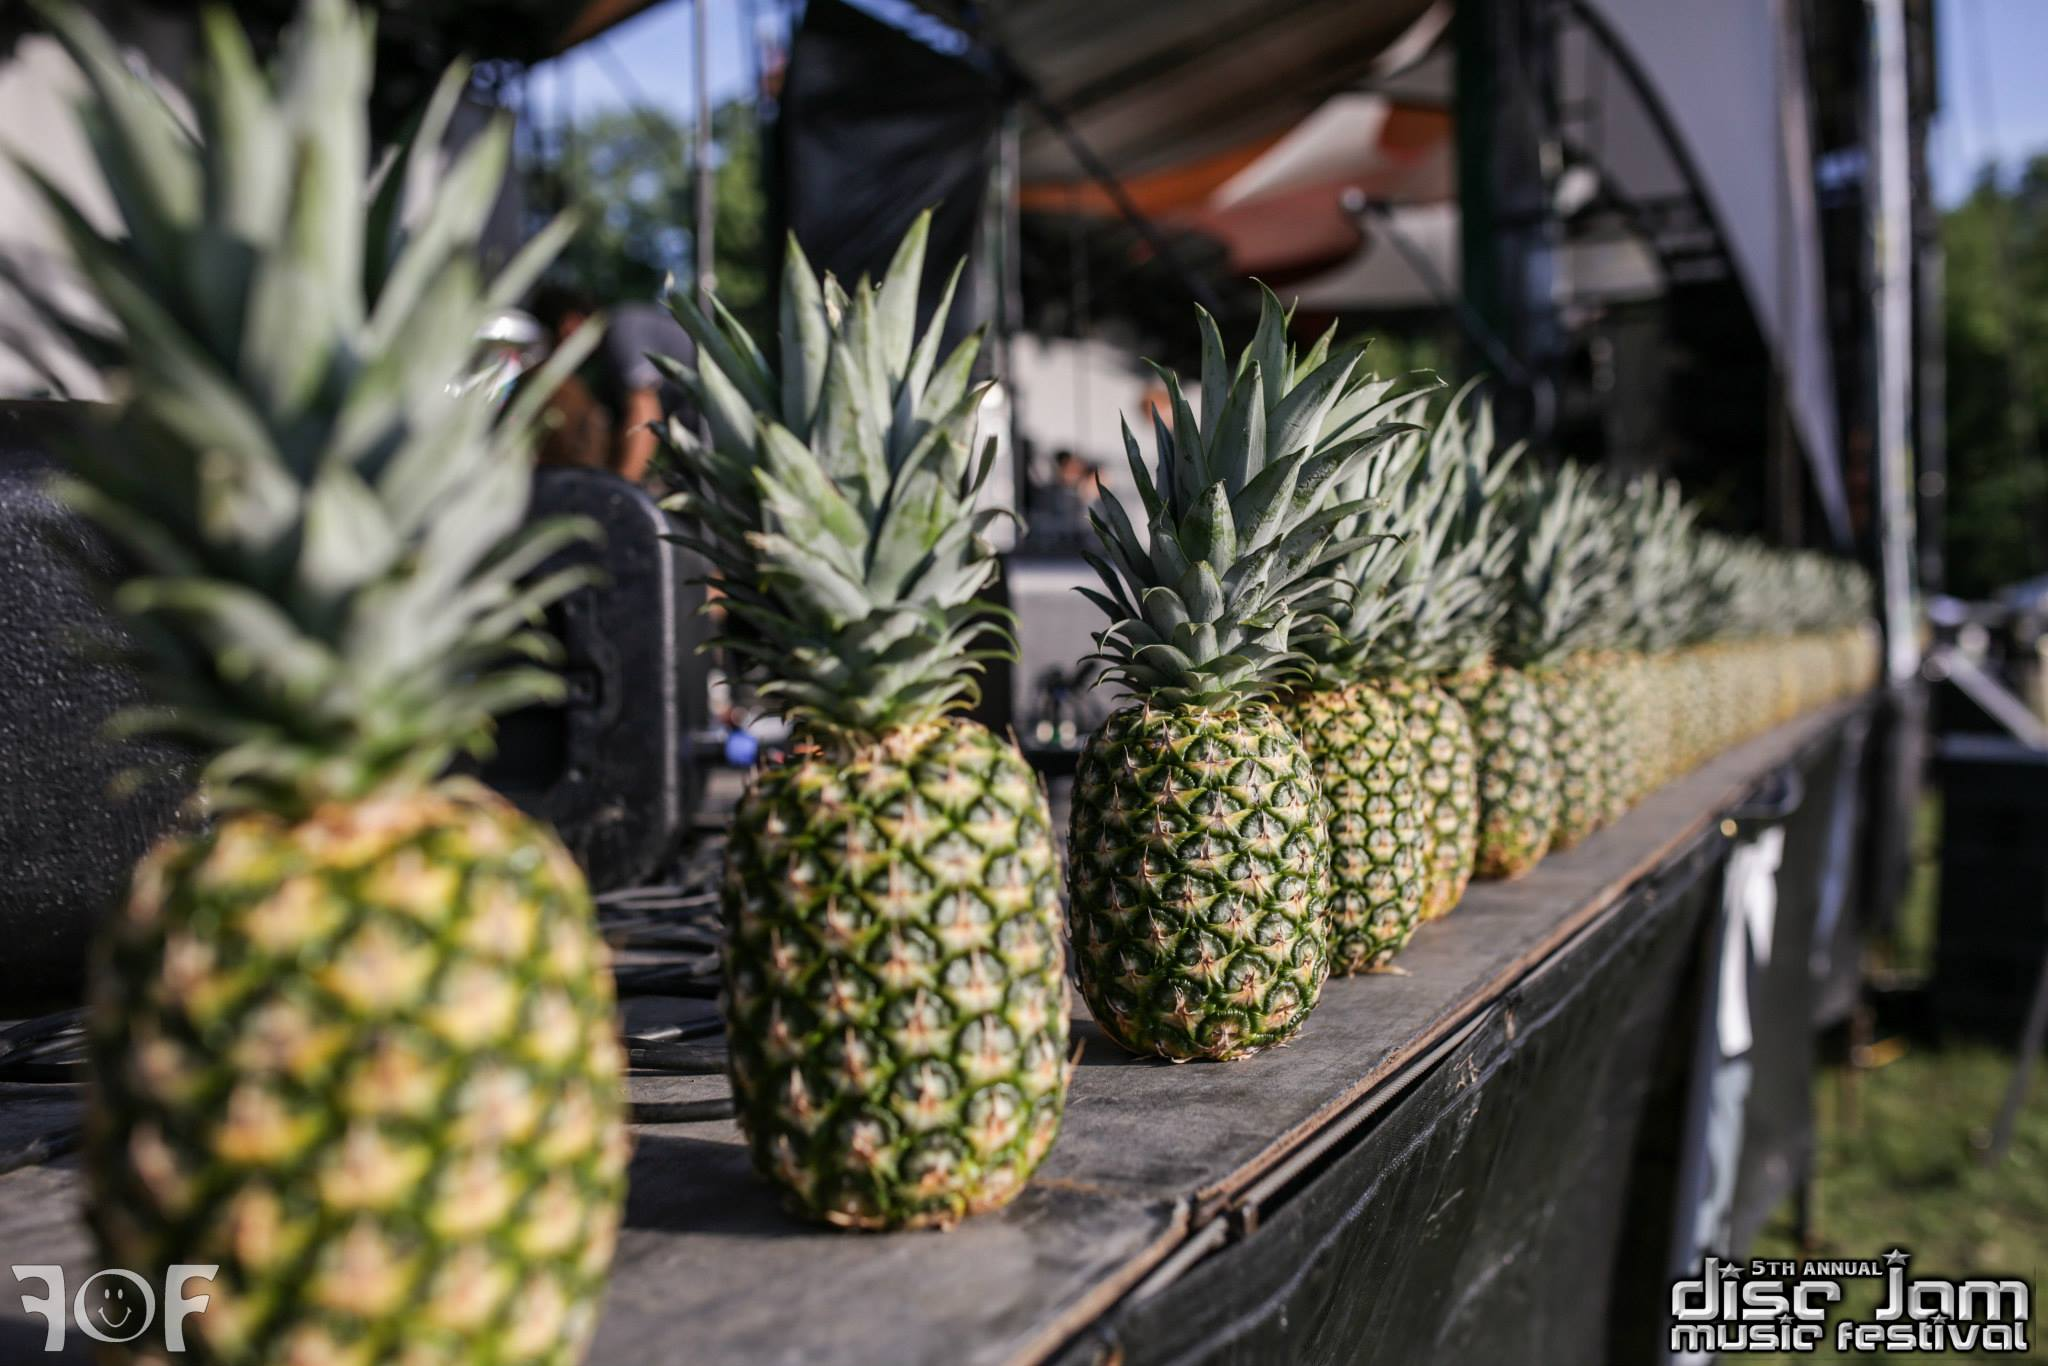 Pineapples fo' daysss   Source: Faces of Festivals and Disc Jam